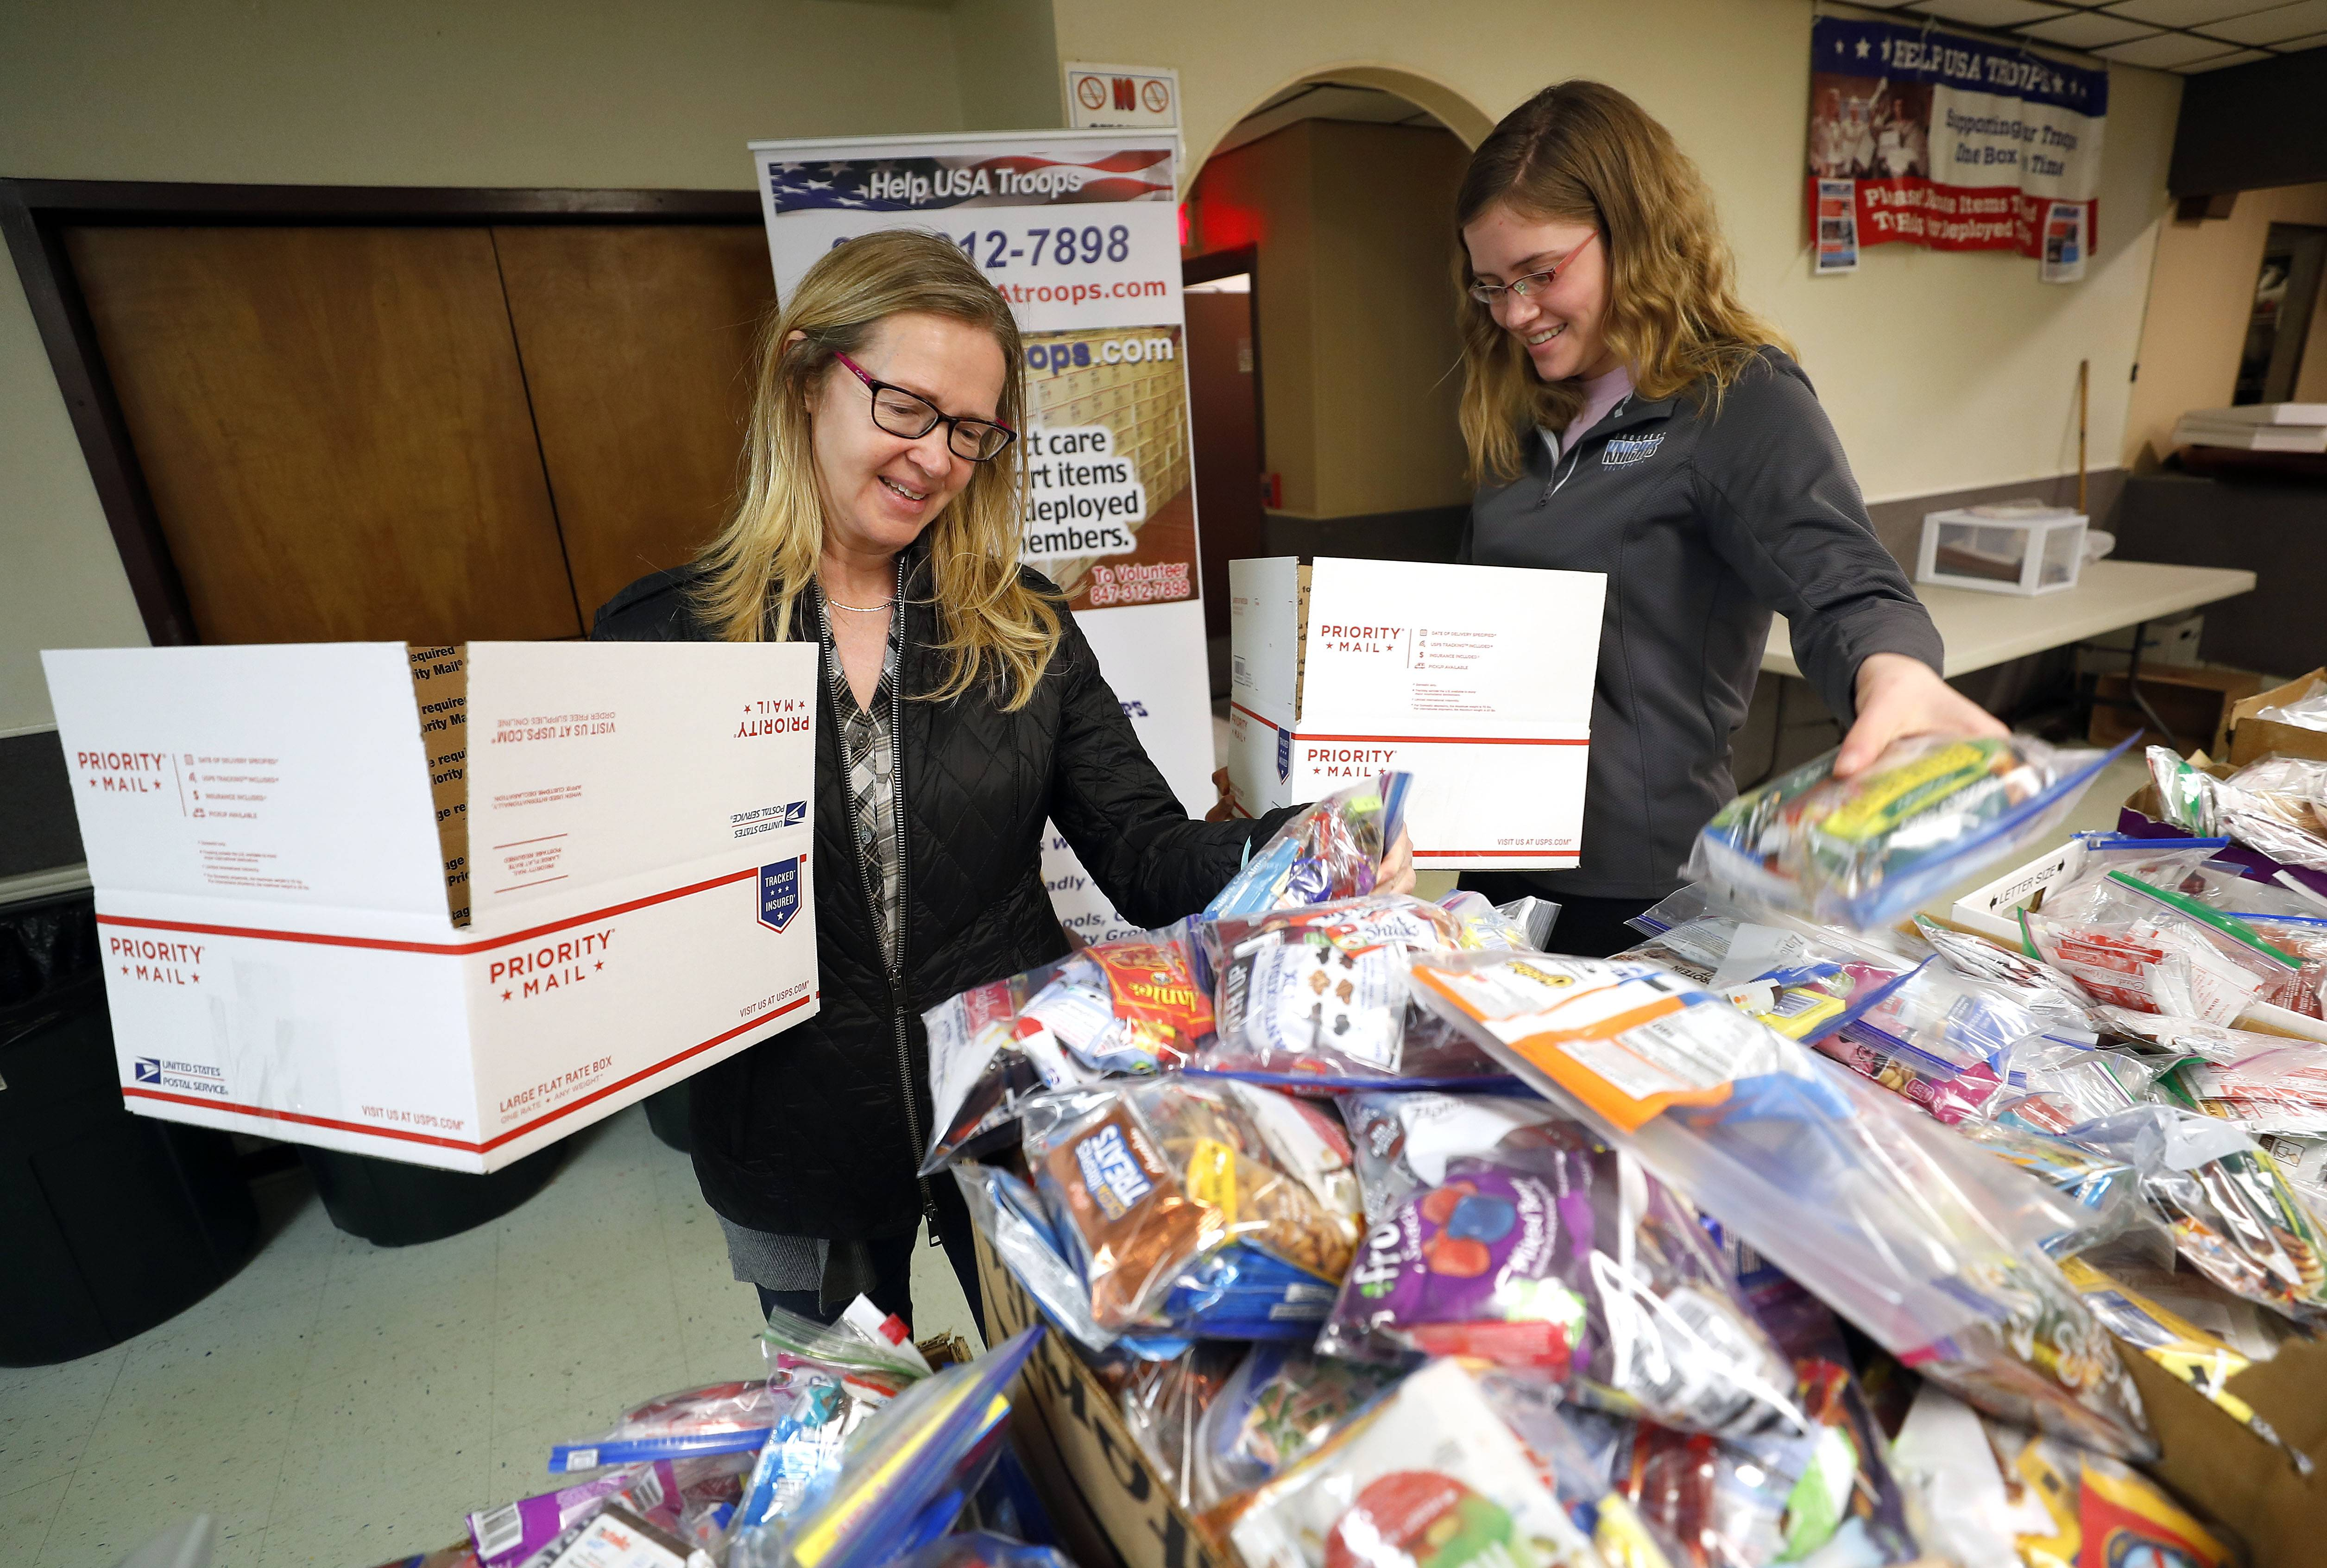 Kathi Inorio, left, and her daughter Grace, both of Mount Prospect, fill boxes as Help USA Troops held a shipping party Sunday at AMVETS Post 66 in Wheeling.